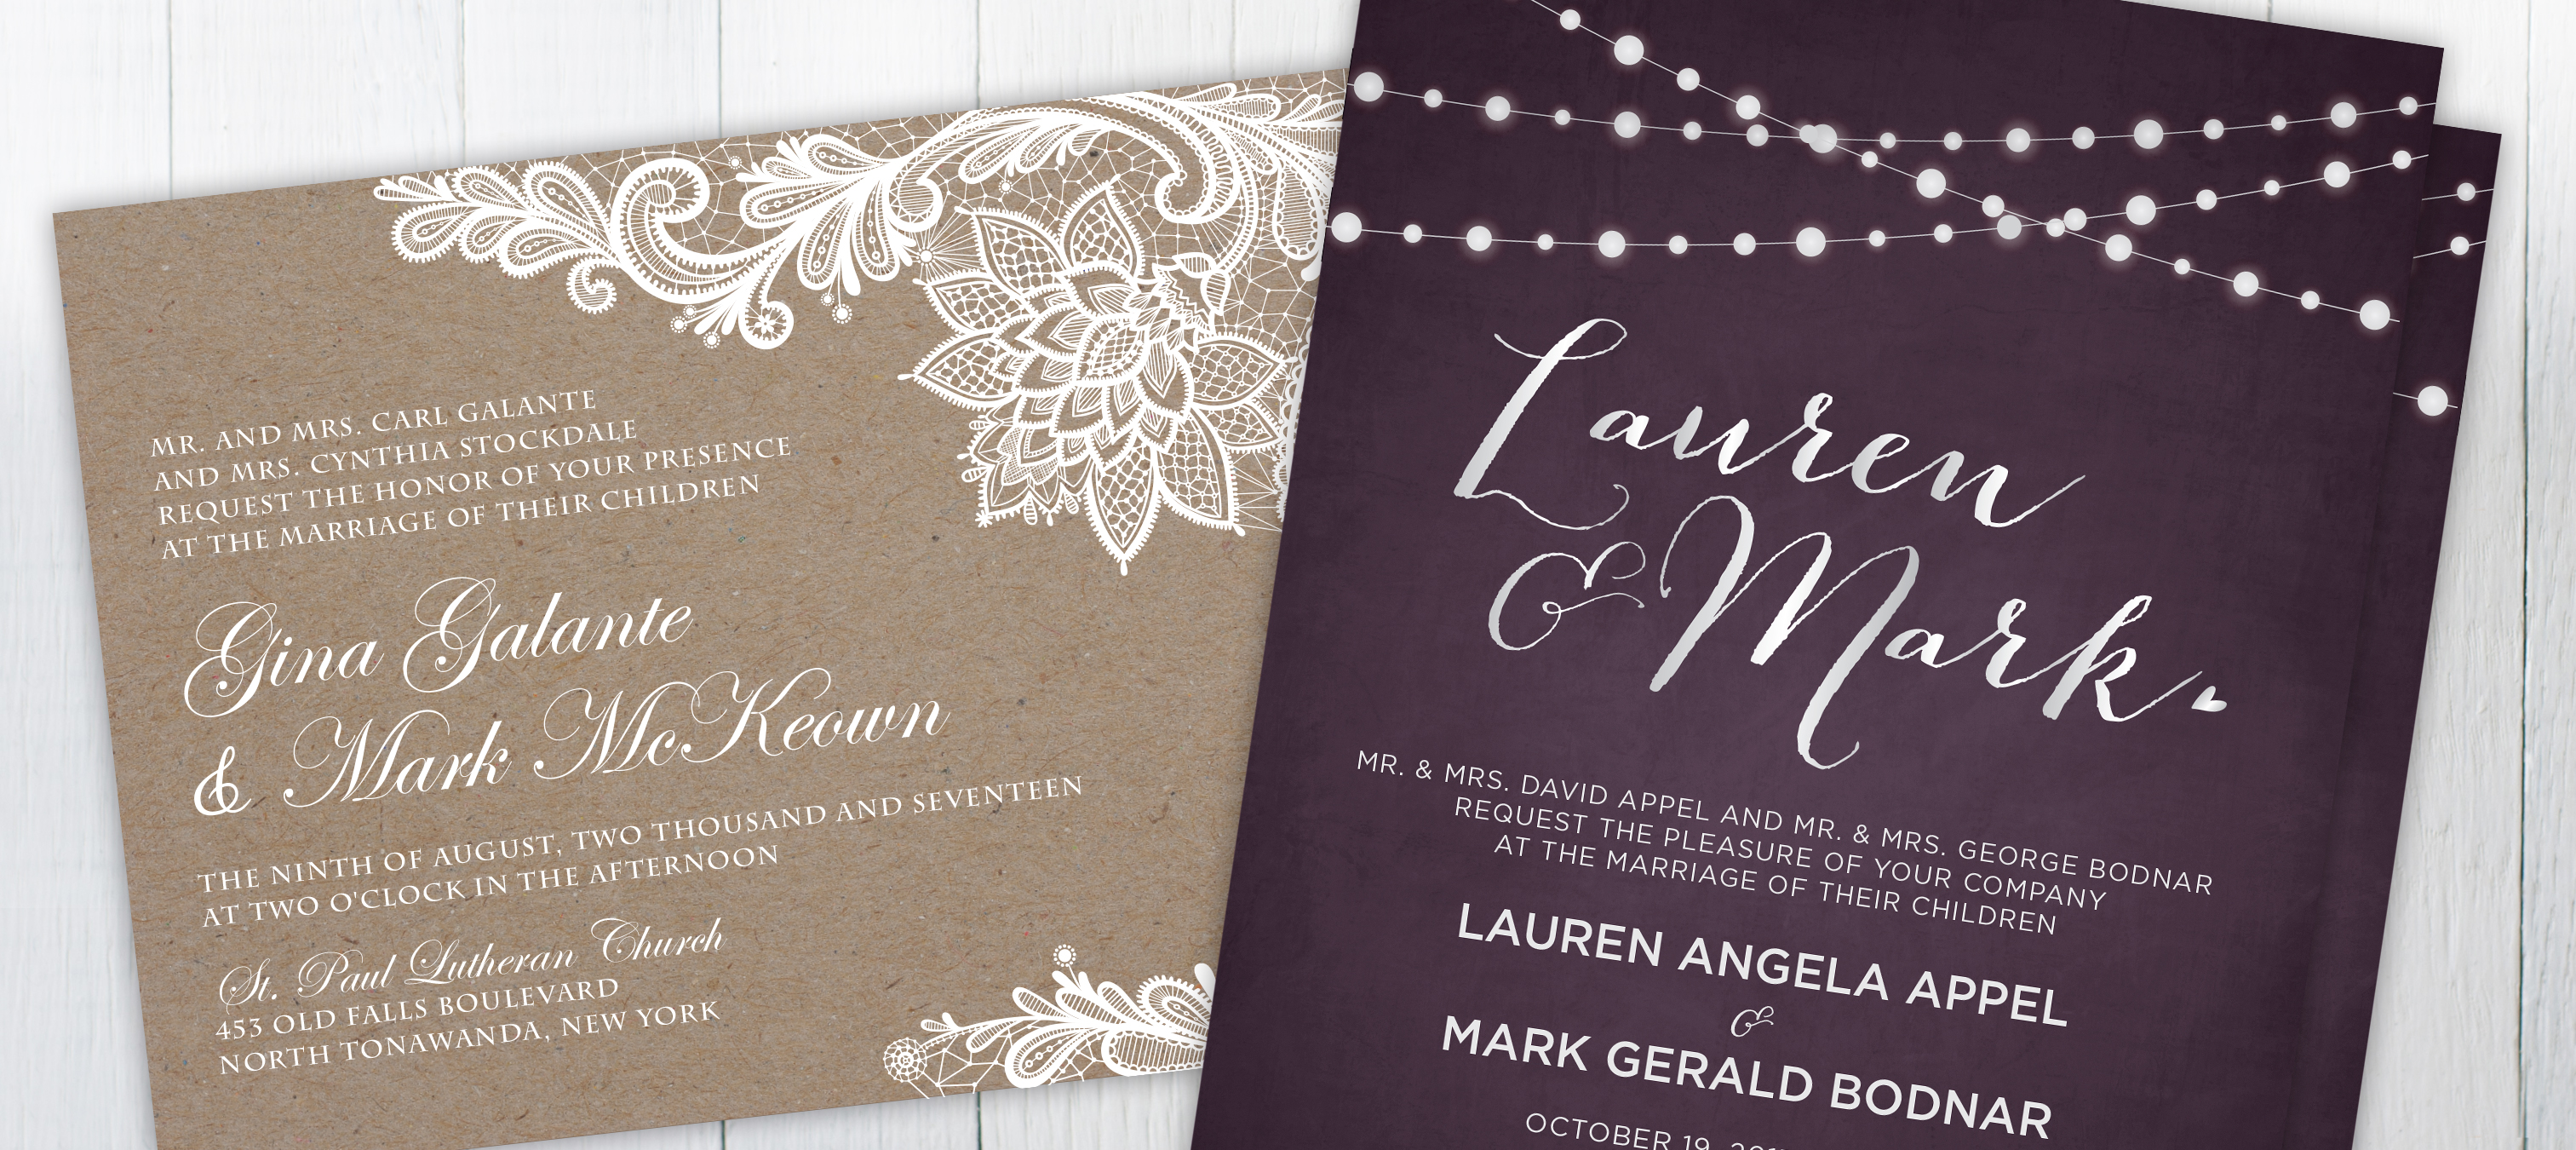 Wedding Invitation Wording • Taylor Bradford